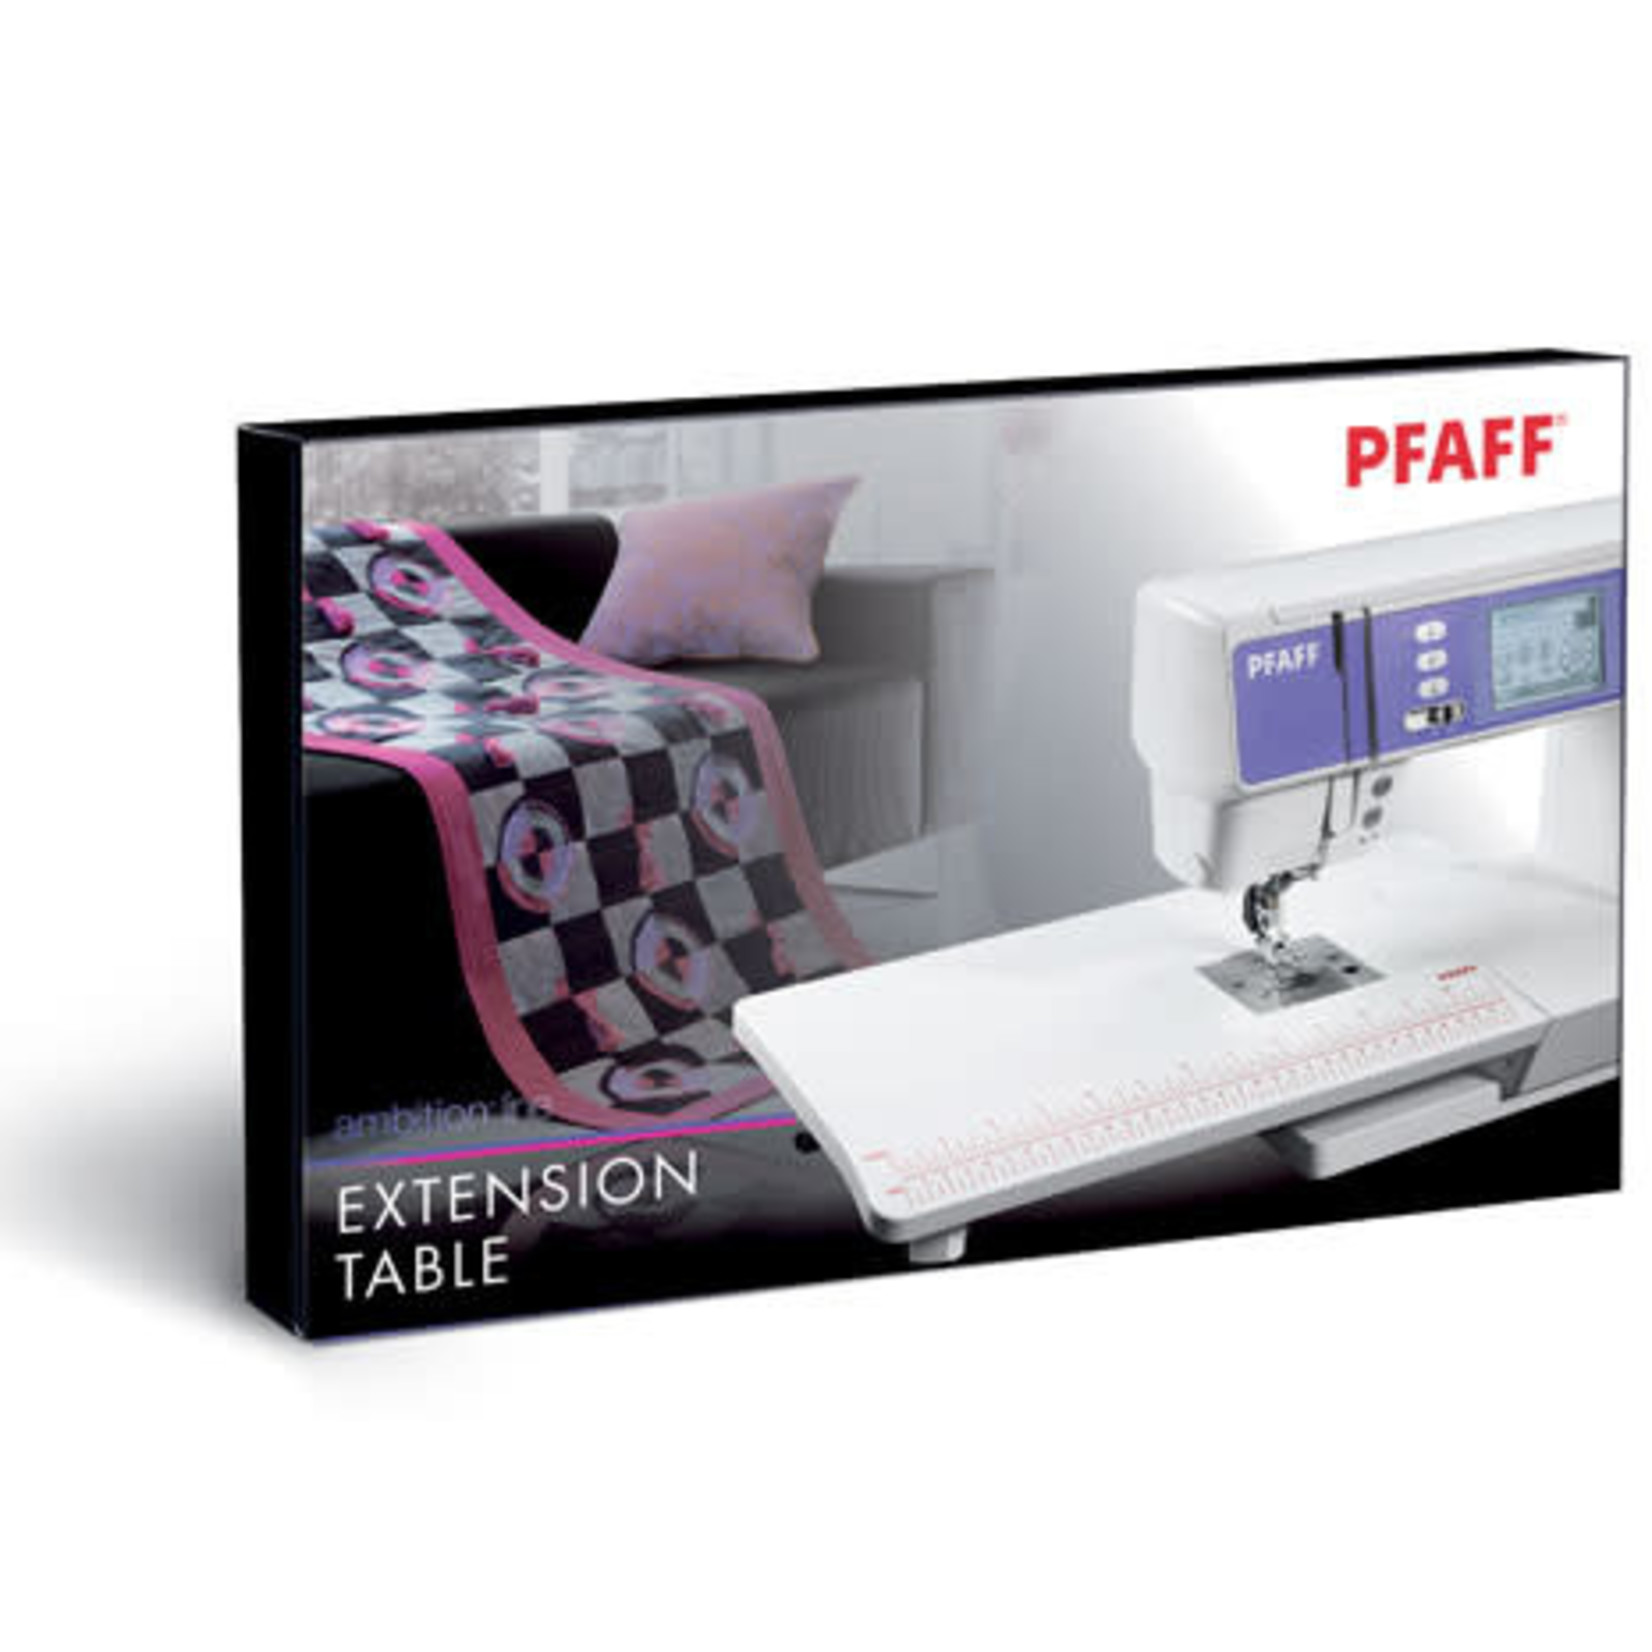 Pfaff Extension Table for K machines